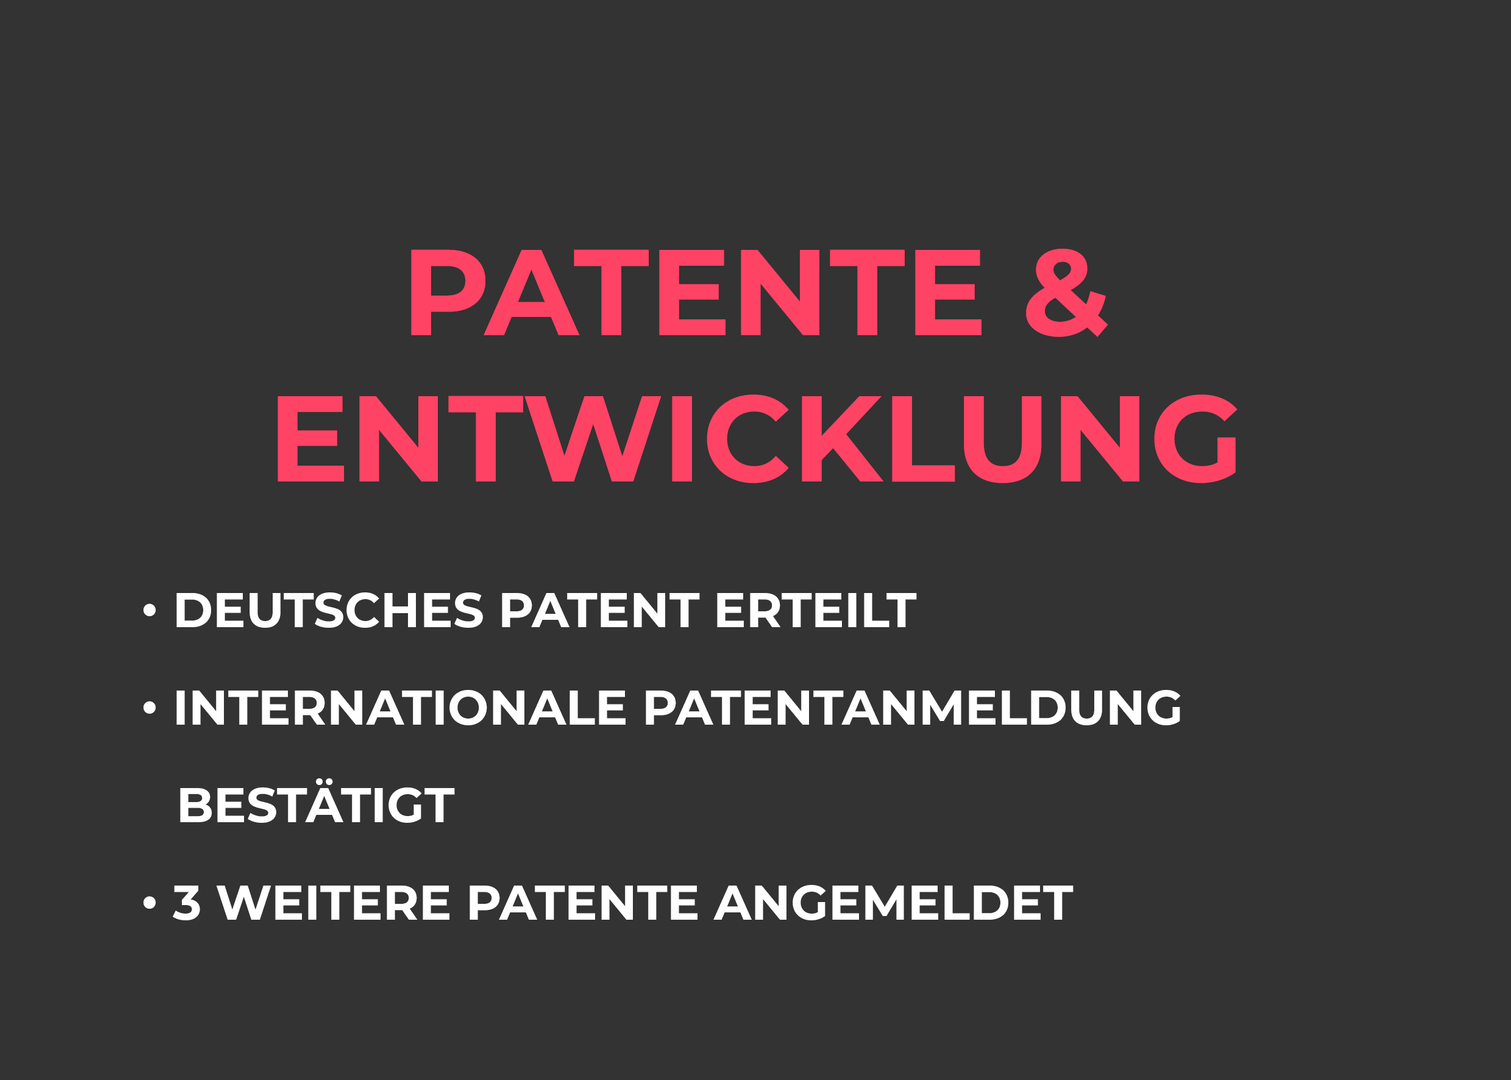 Patente&Entwicklung5.png